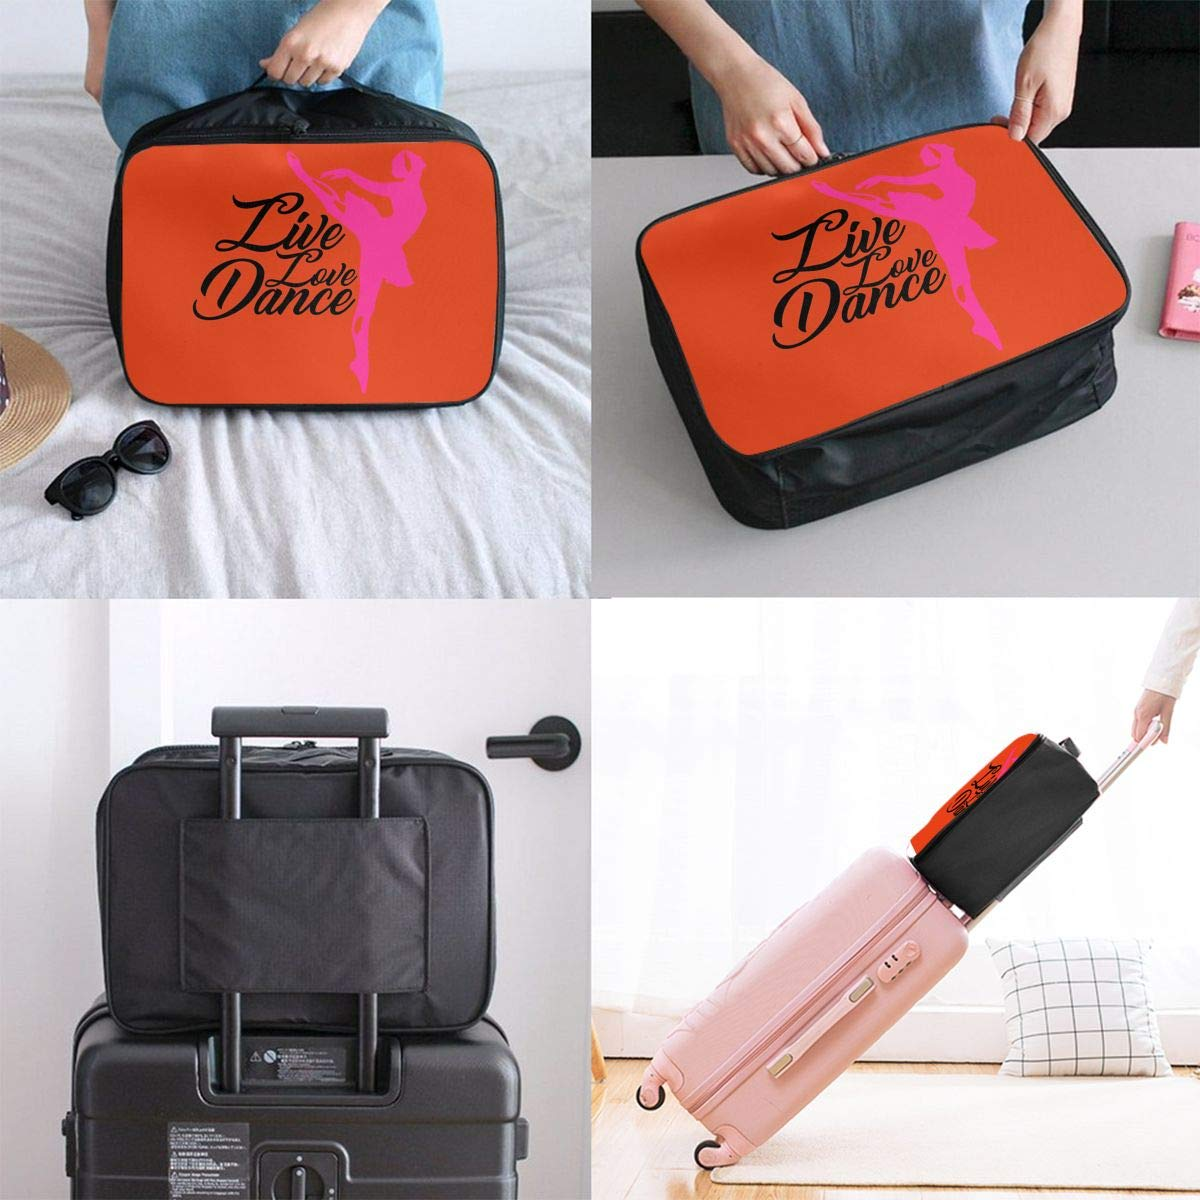 Travel Luggage Duffle Bag Lightweight Portable Handbag Live Love Dance Large Capacity Waterproof Foldable Storage Tote